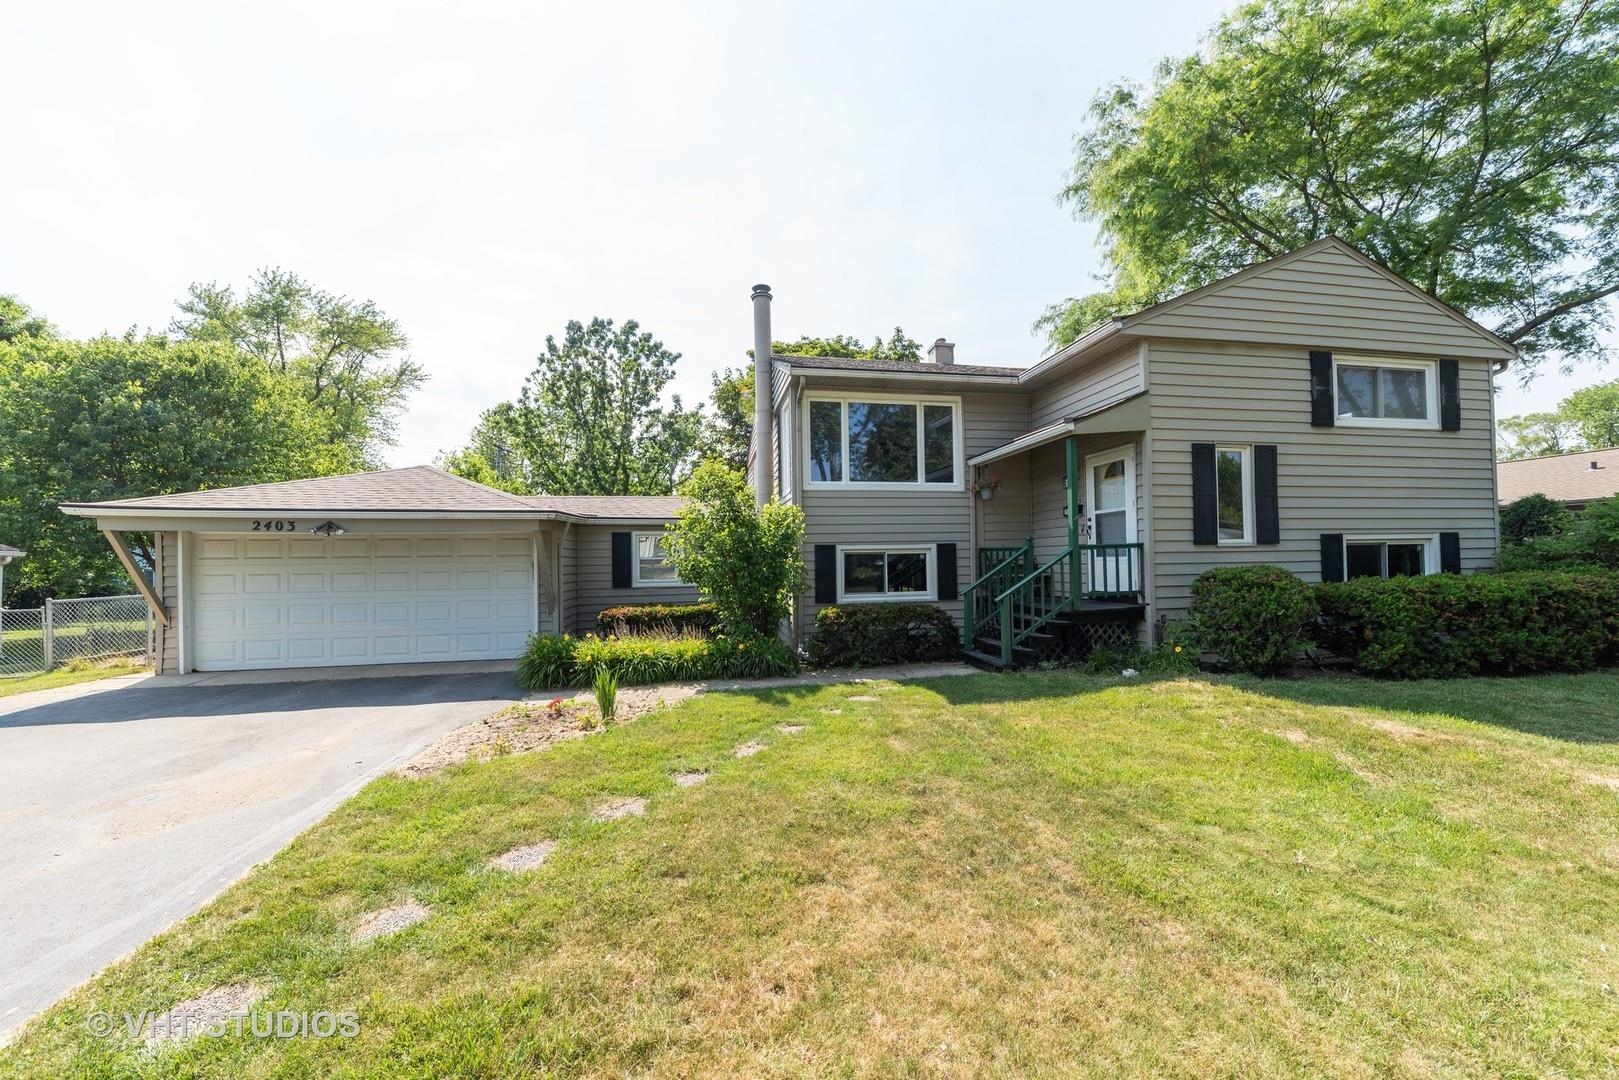 2403 Dove Street, Rolling Meadows, IL 60008 - #: 10739095